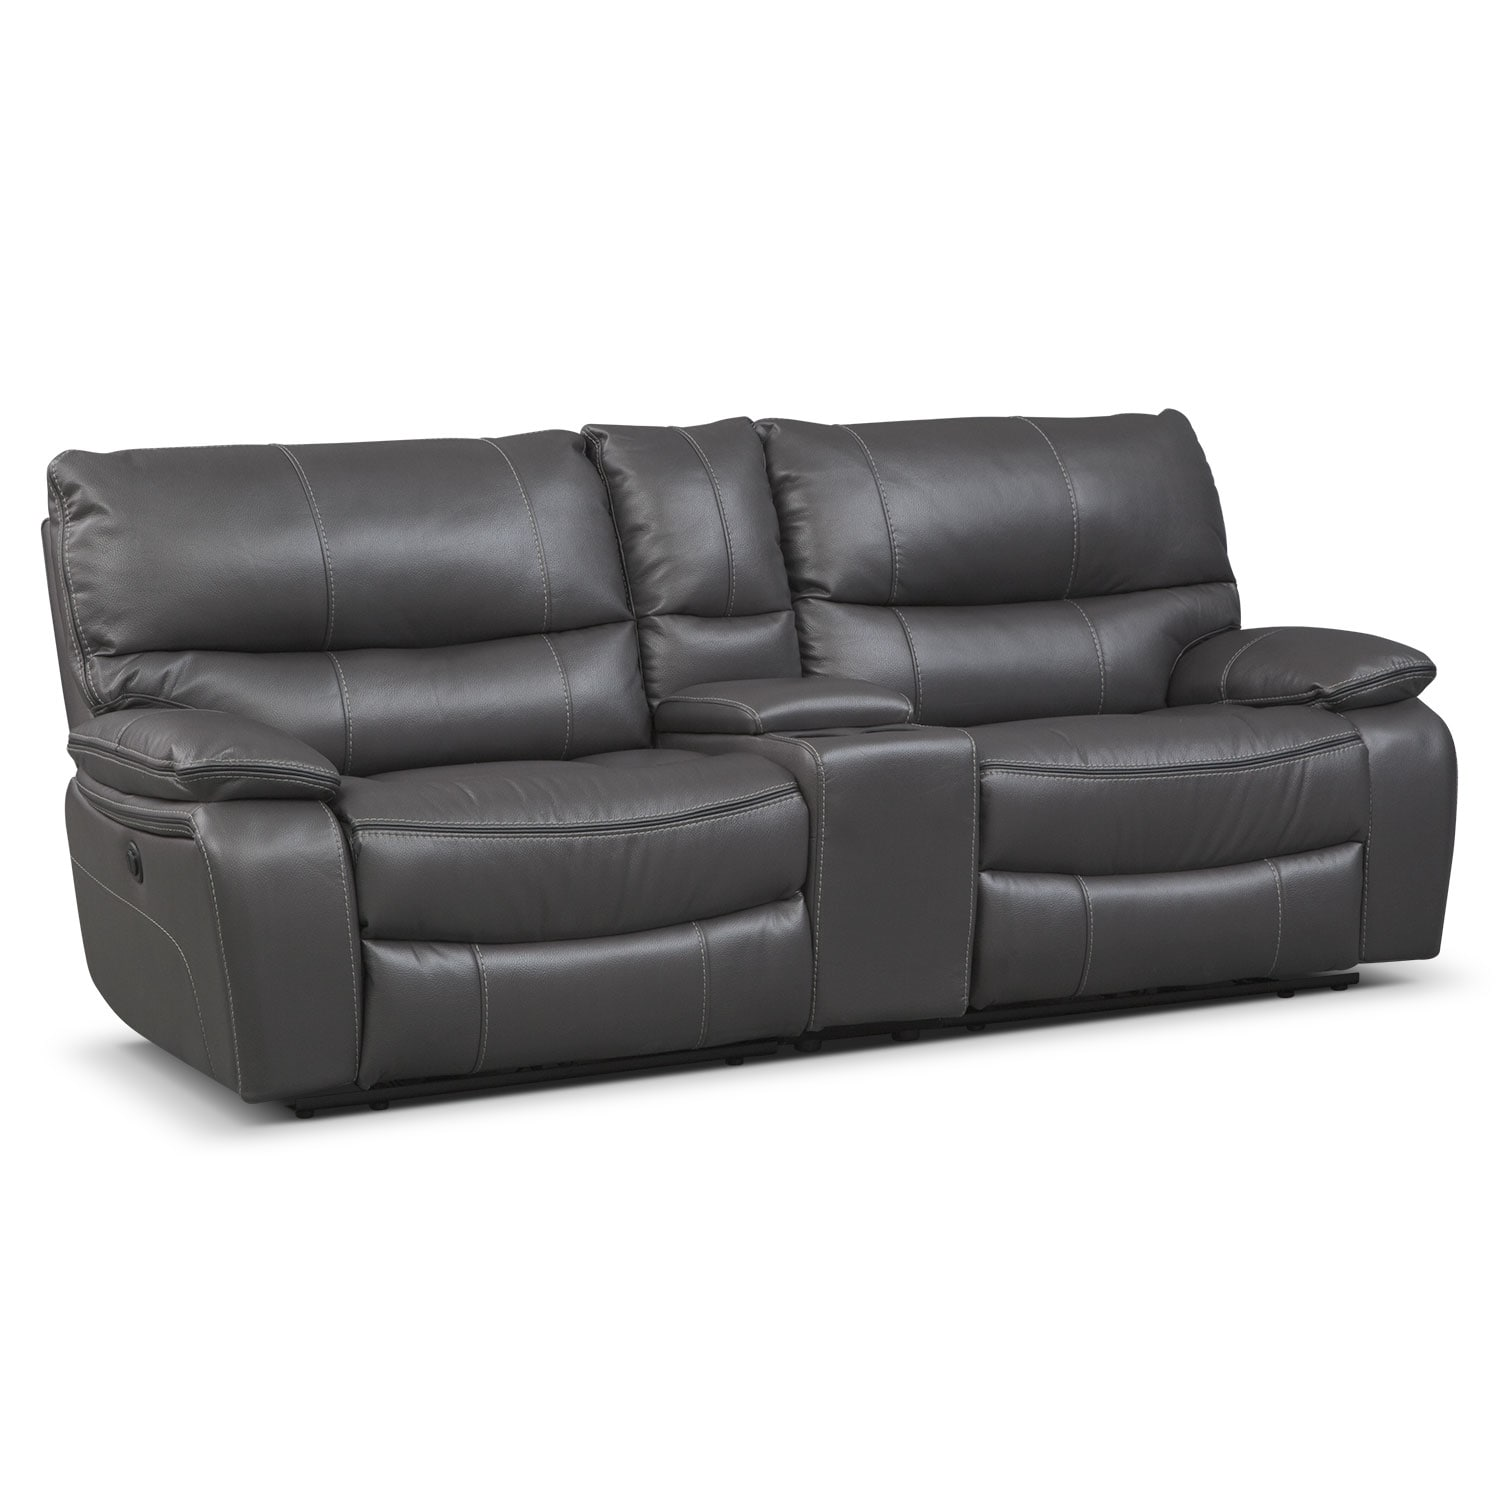 Newport 2 Piece Power Reclining Sofa Gray